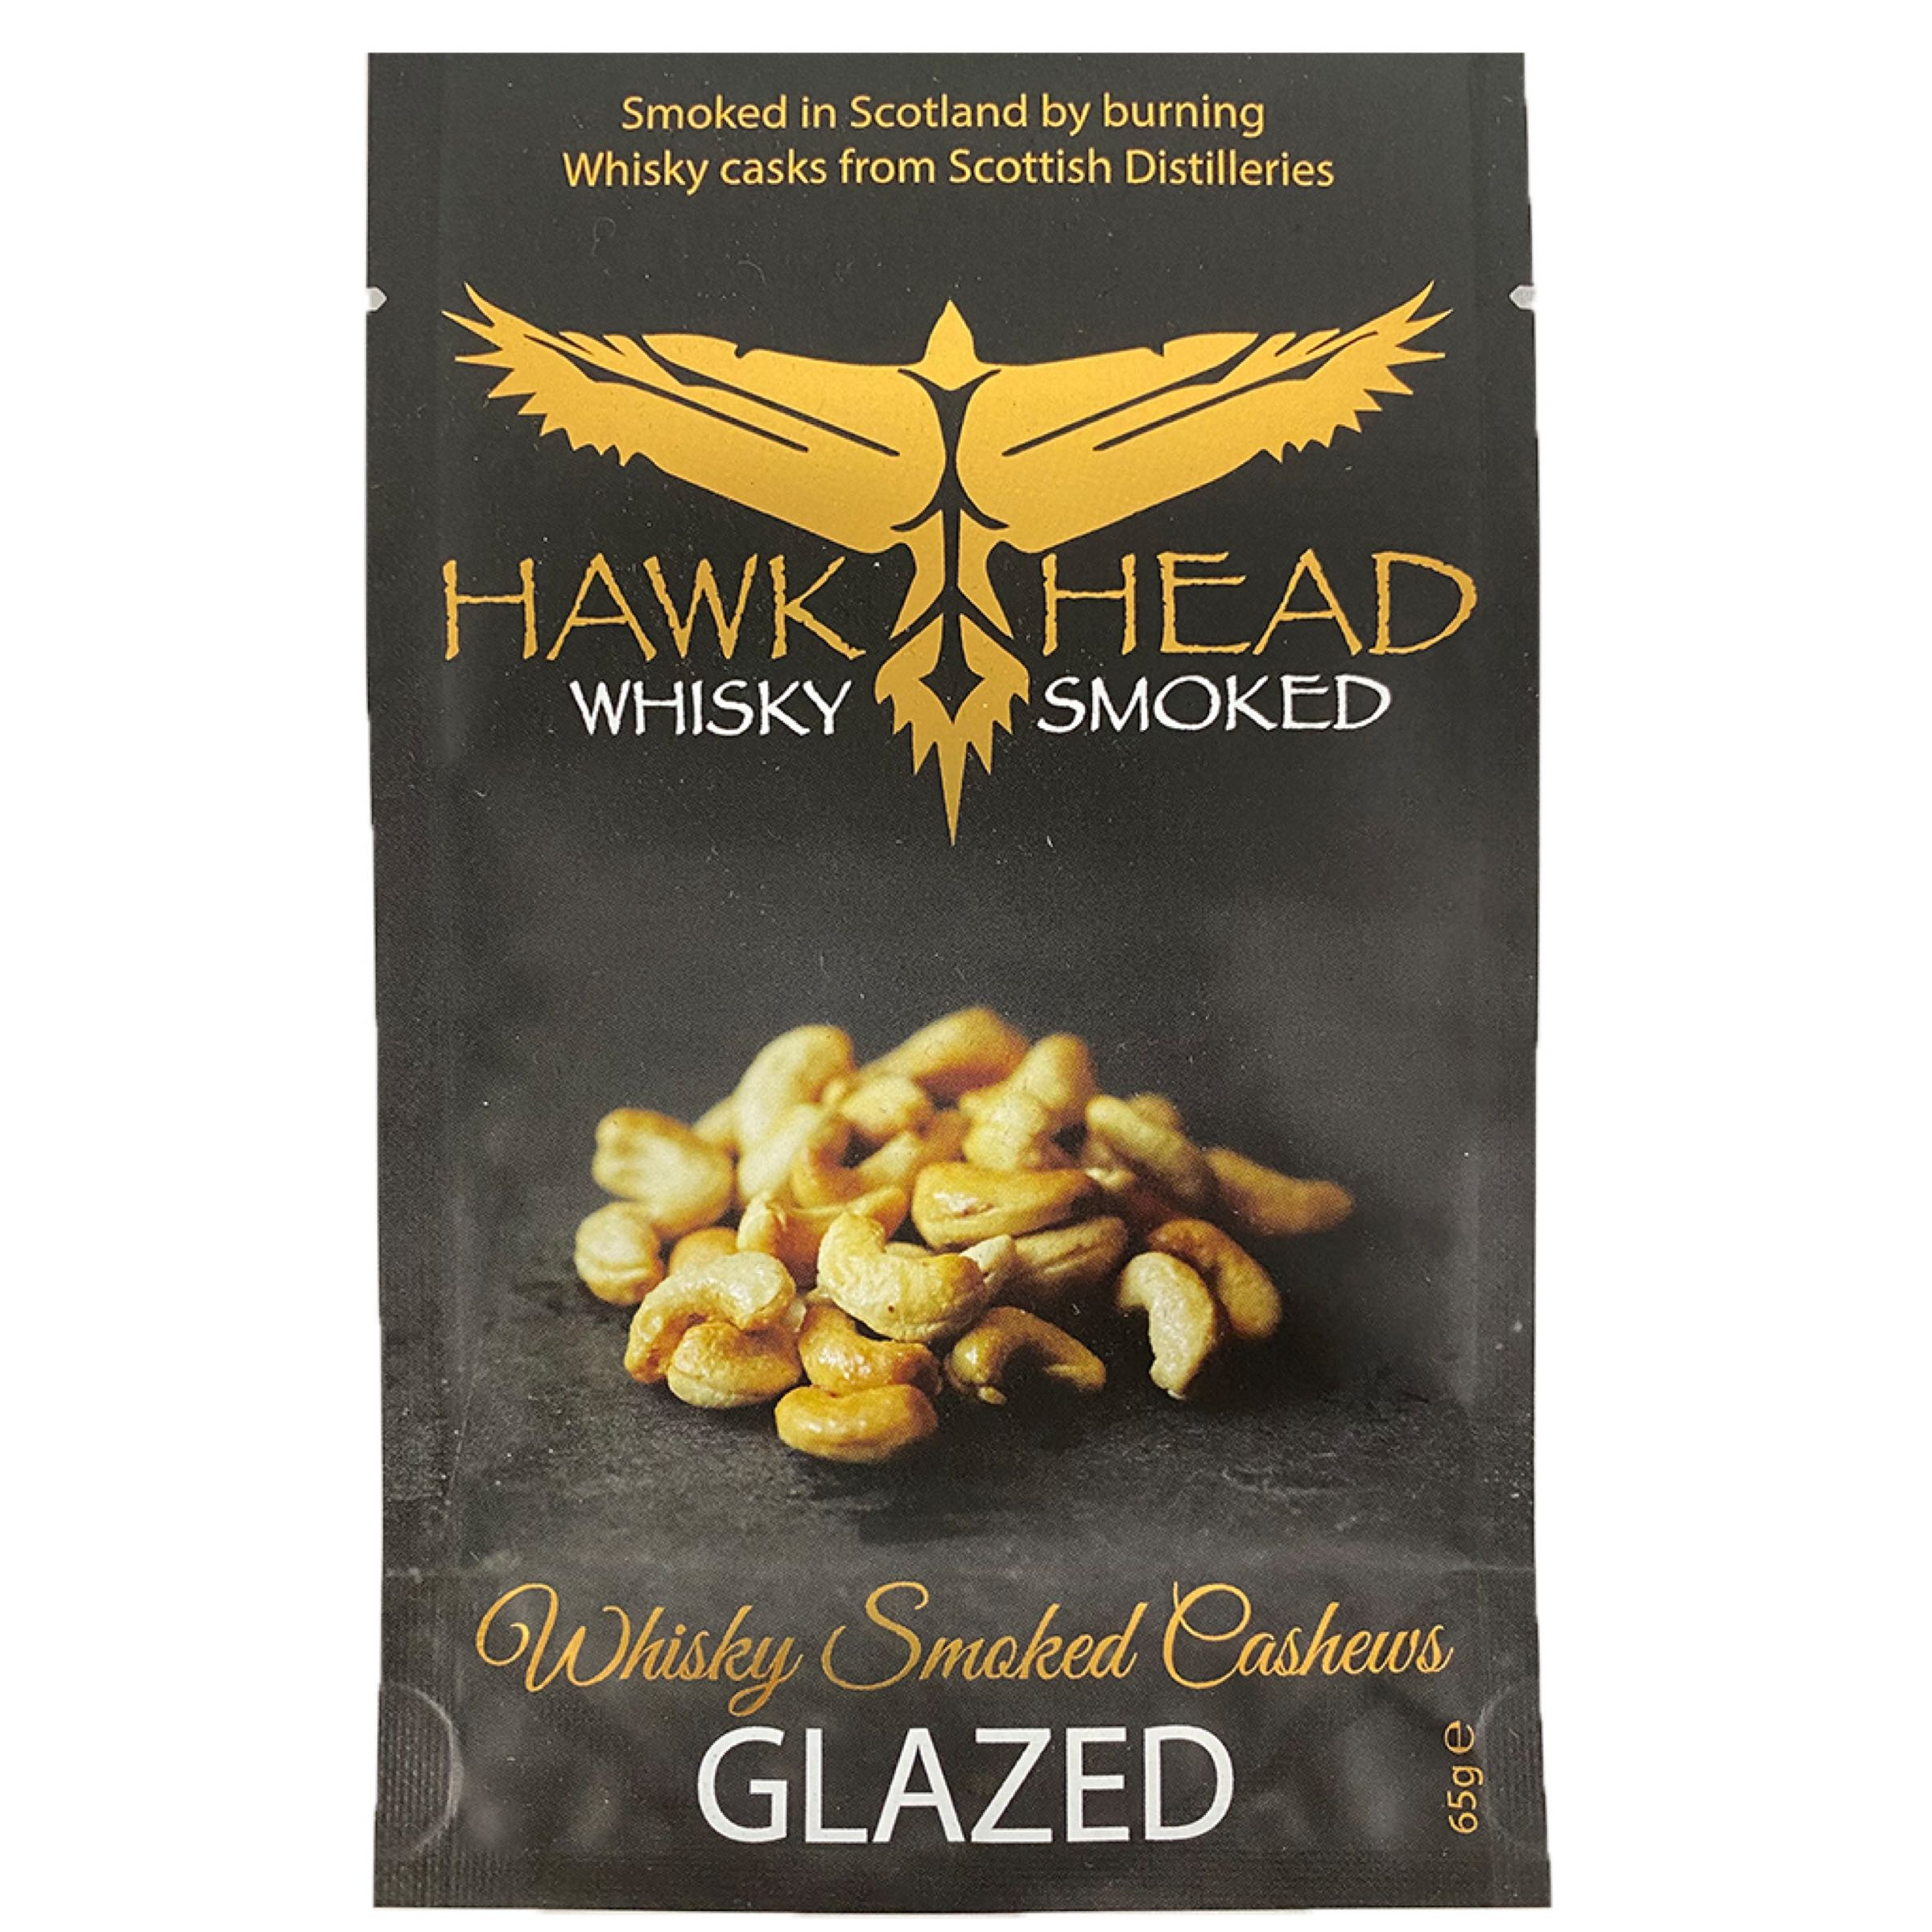 Glazed Whisky Smoked Cashews